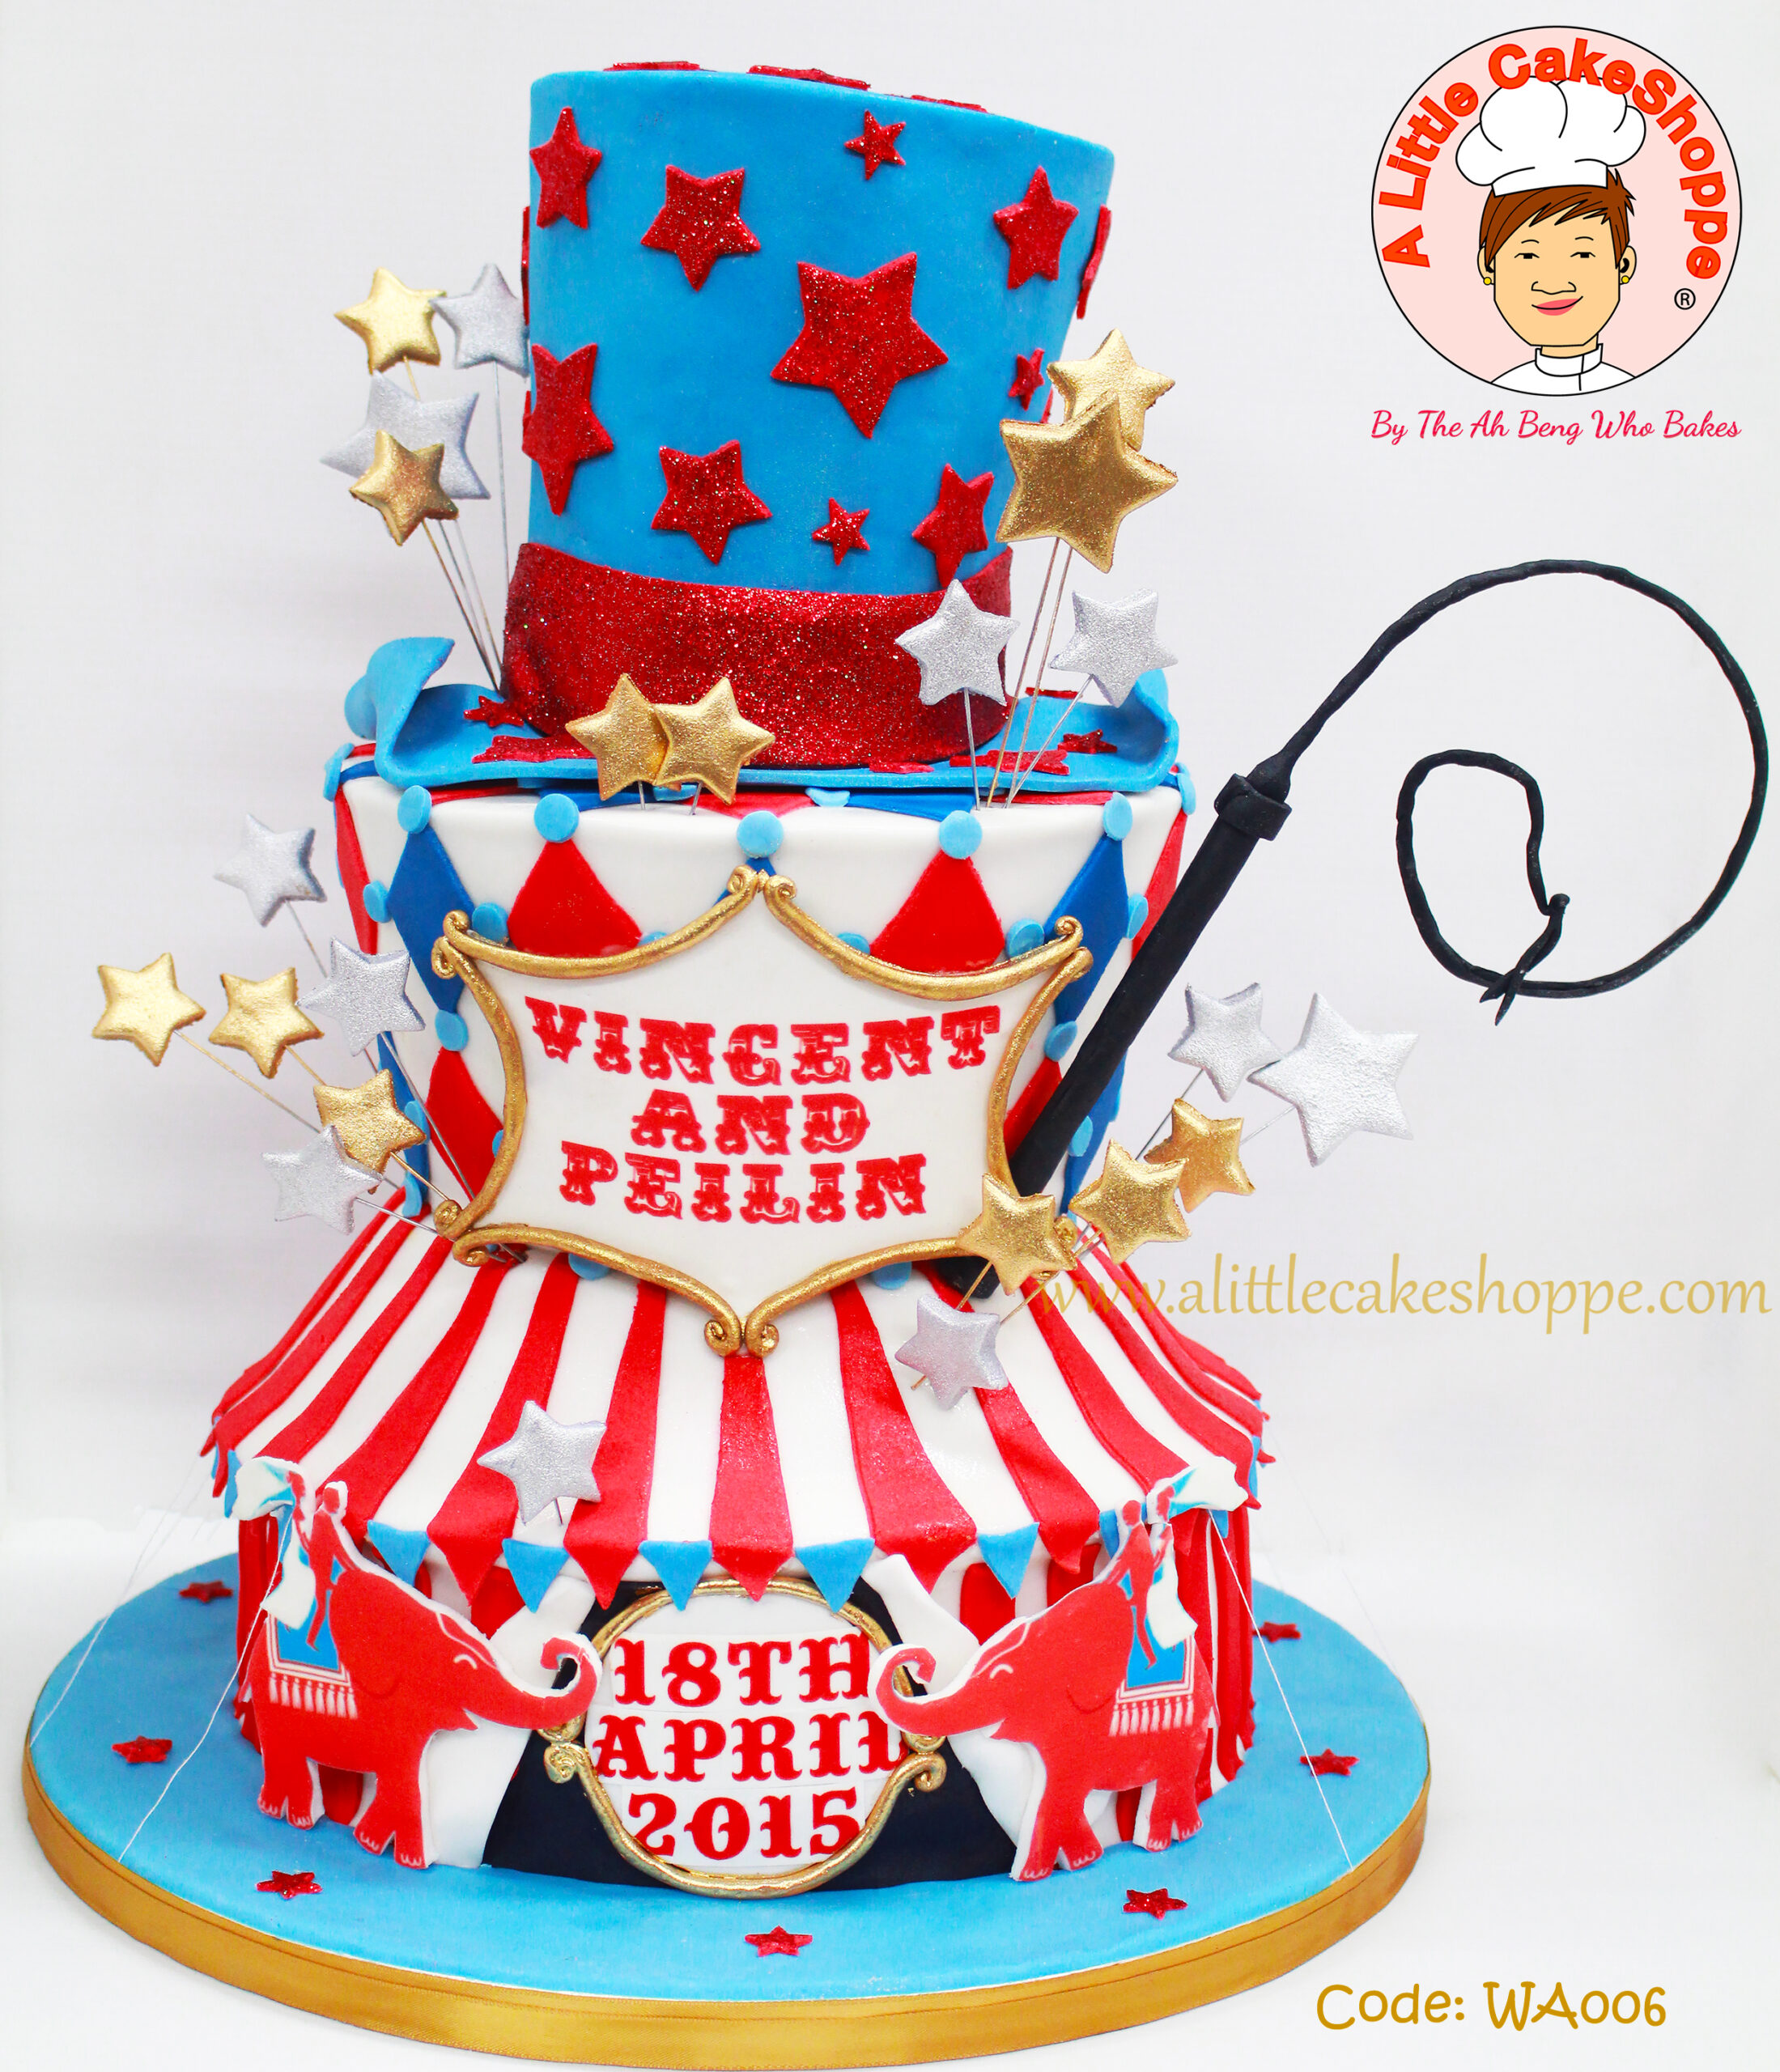 Best Customised Cake Singapore custom cake 2D 3D birthday cake cupcakes wedding corporate events anniversary fondant fresh cream buttercream cakes alittlecakeshoppe a little cake shoppe compliments review singapore bakers SG cakeshop ah beng who bakes circus wedding